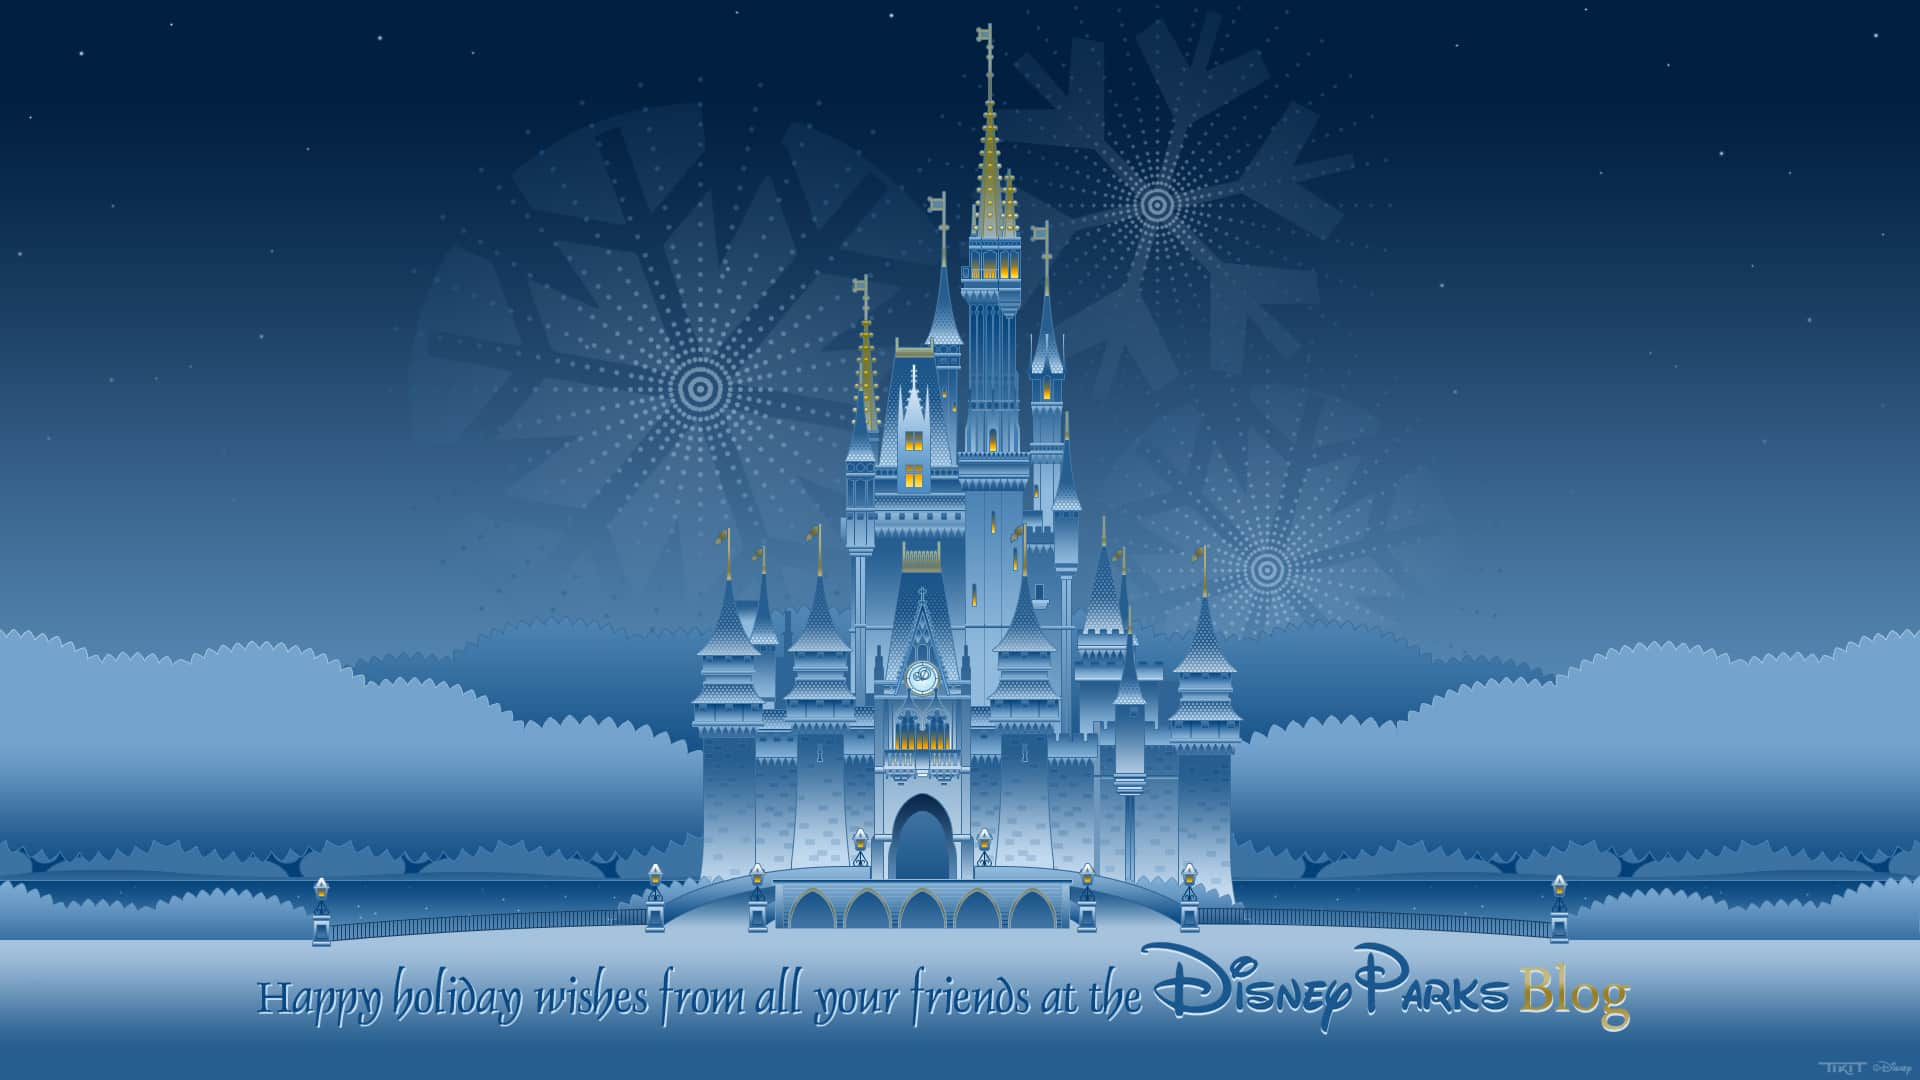 Walt Disney Christmas Wallpaper.Get Excited For The Season With 18 Holiday Disney Parks Blog